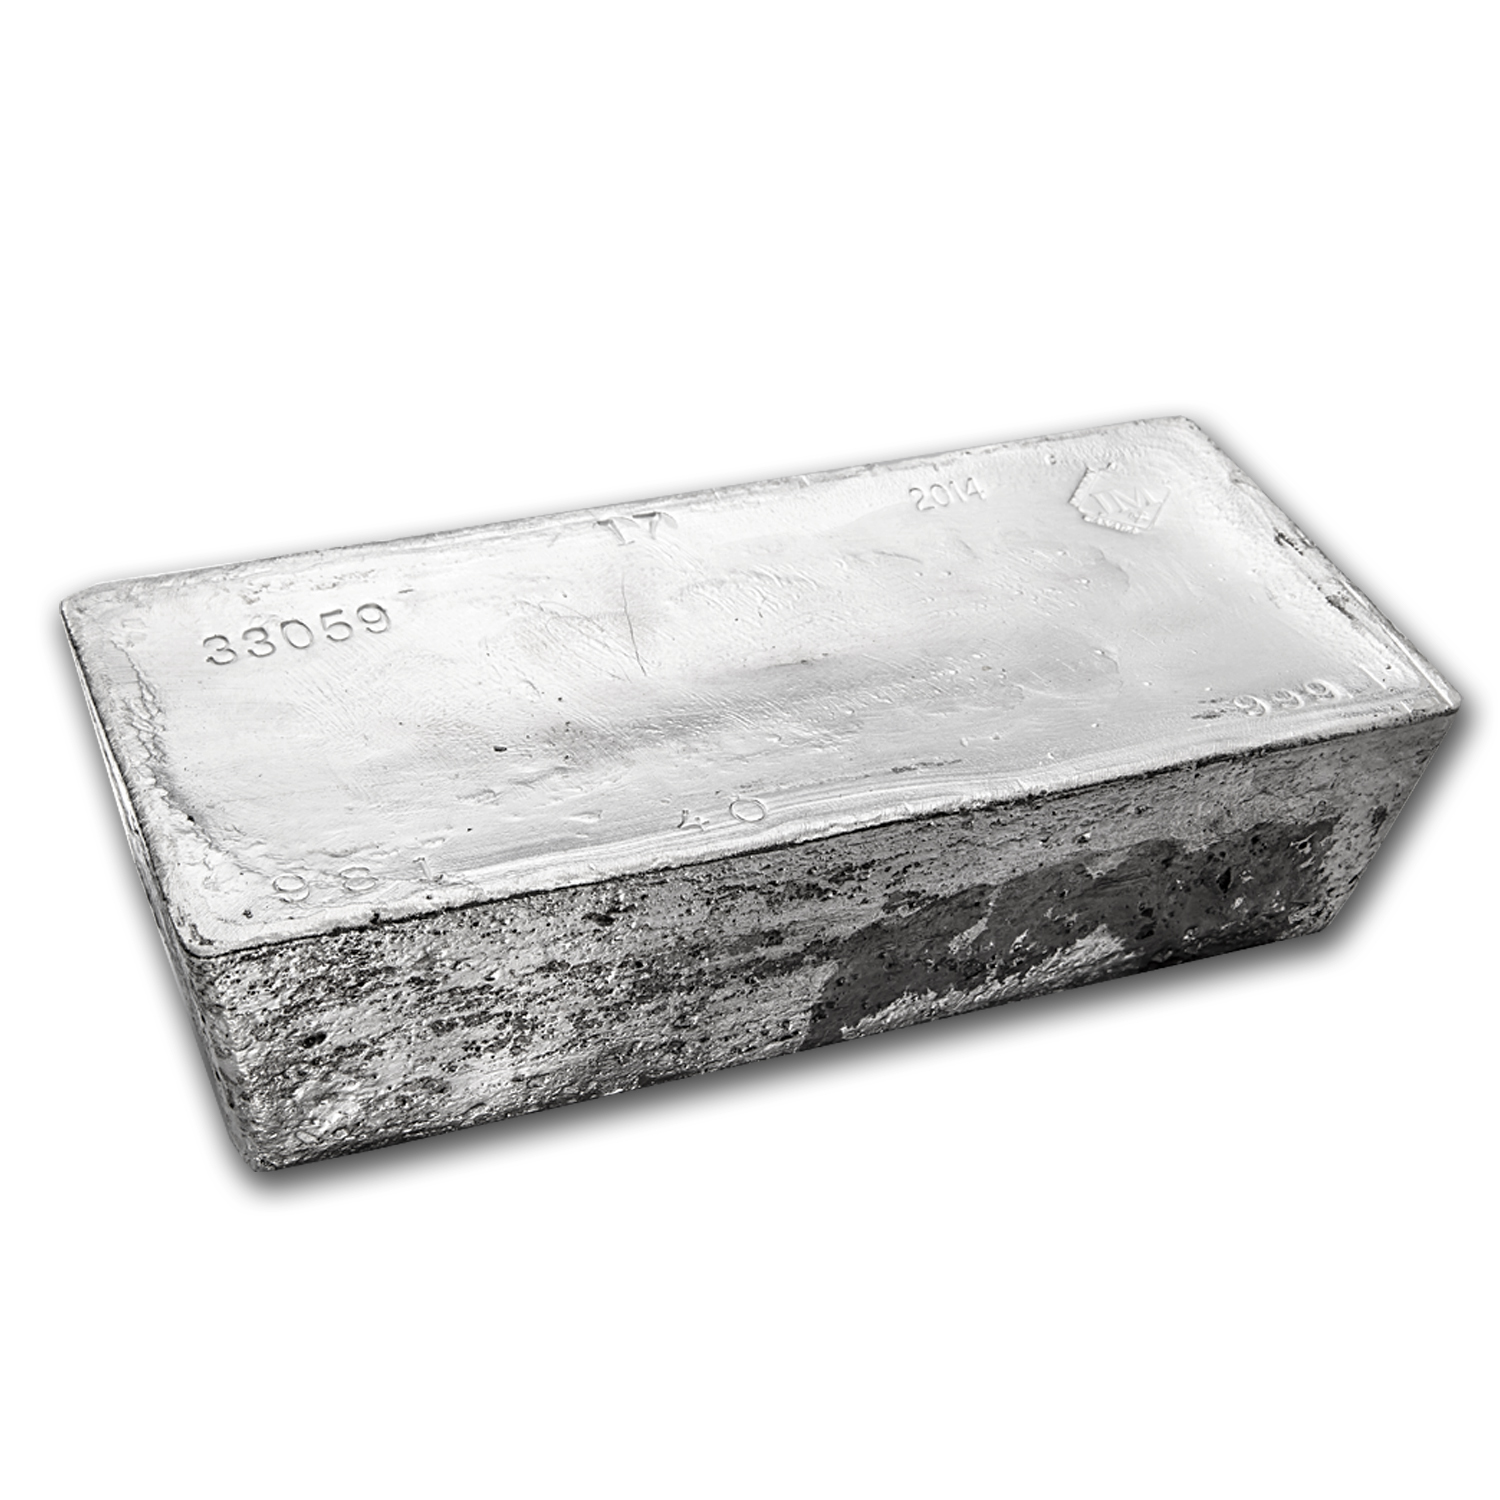 903.50 oz Silver Bar - Johnson Matthey